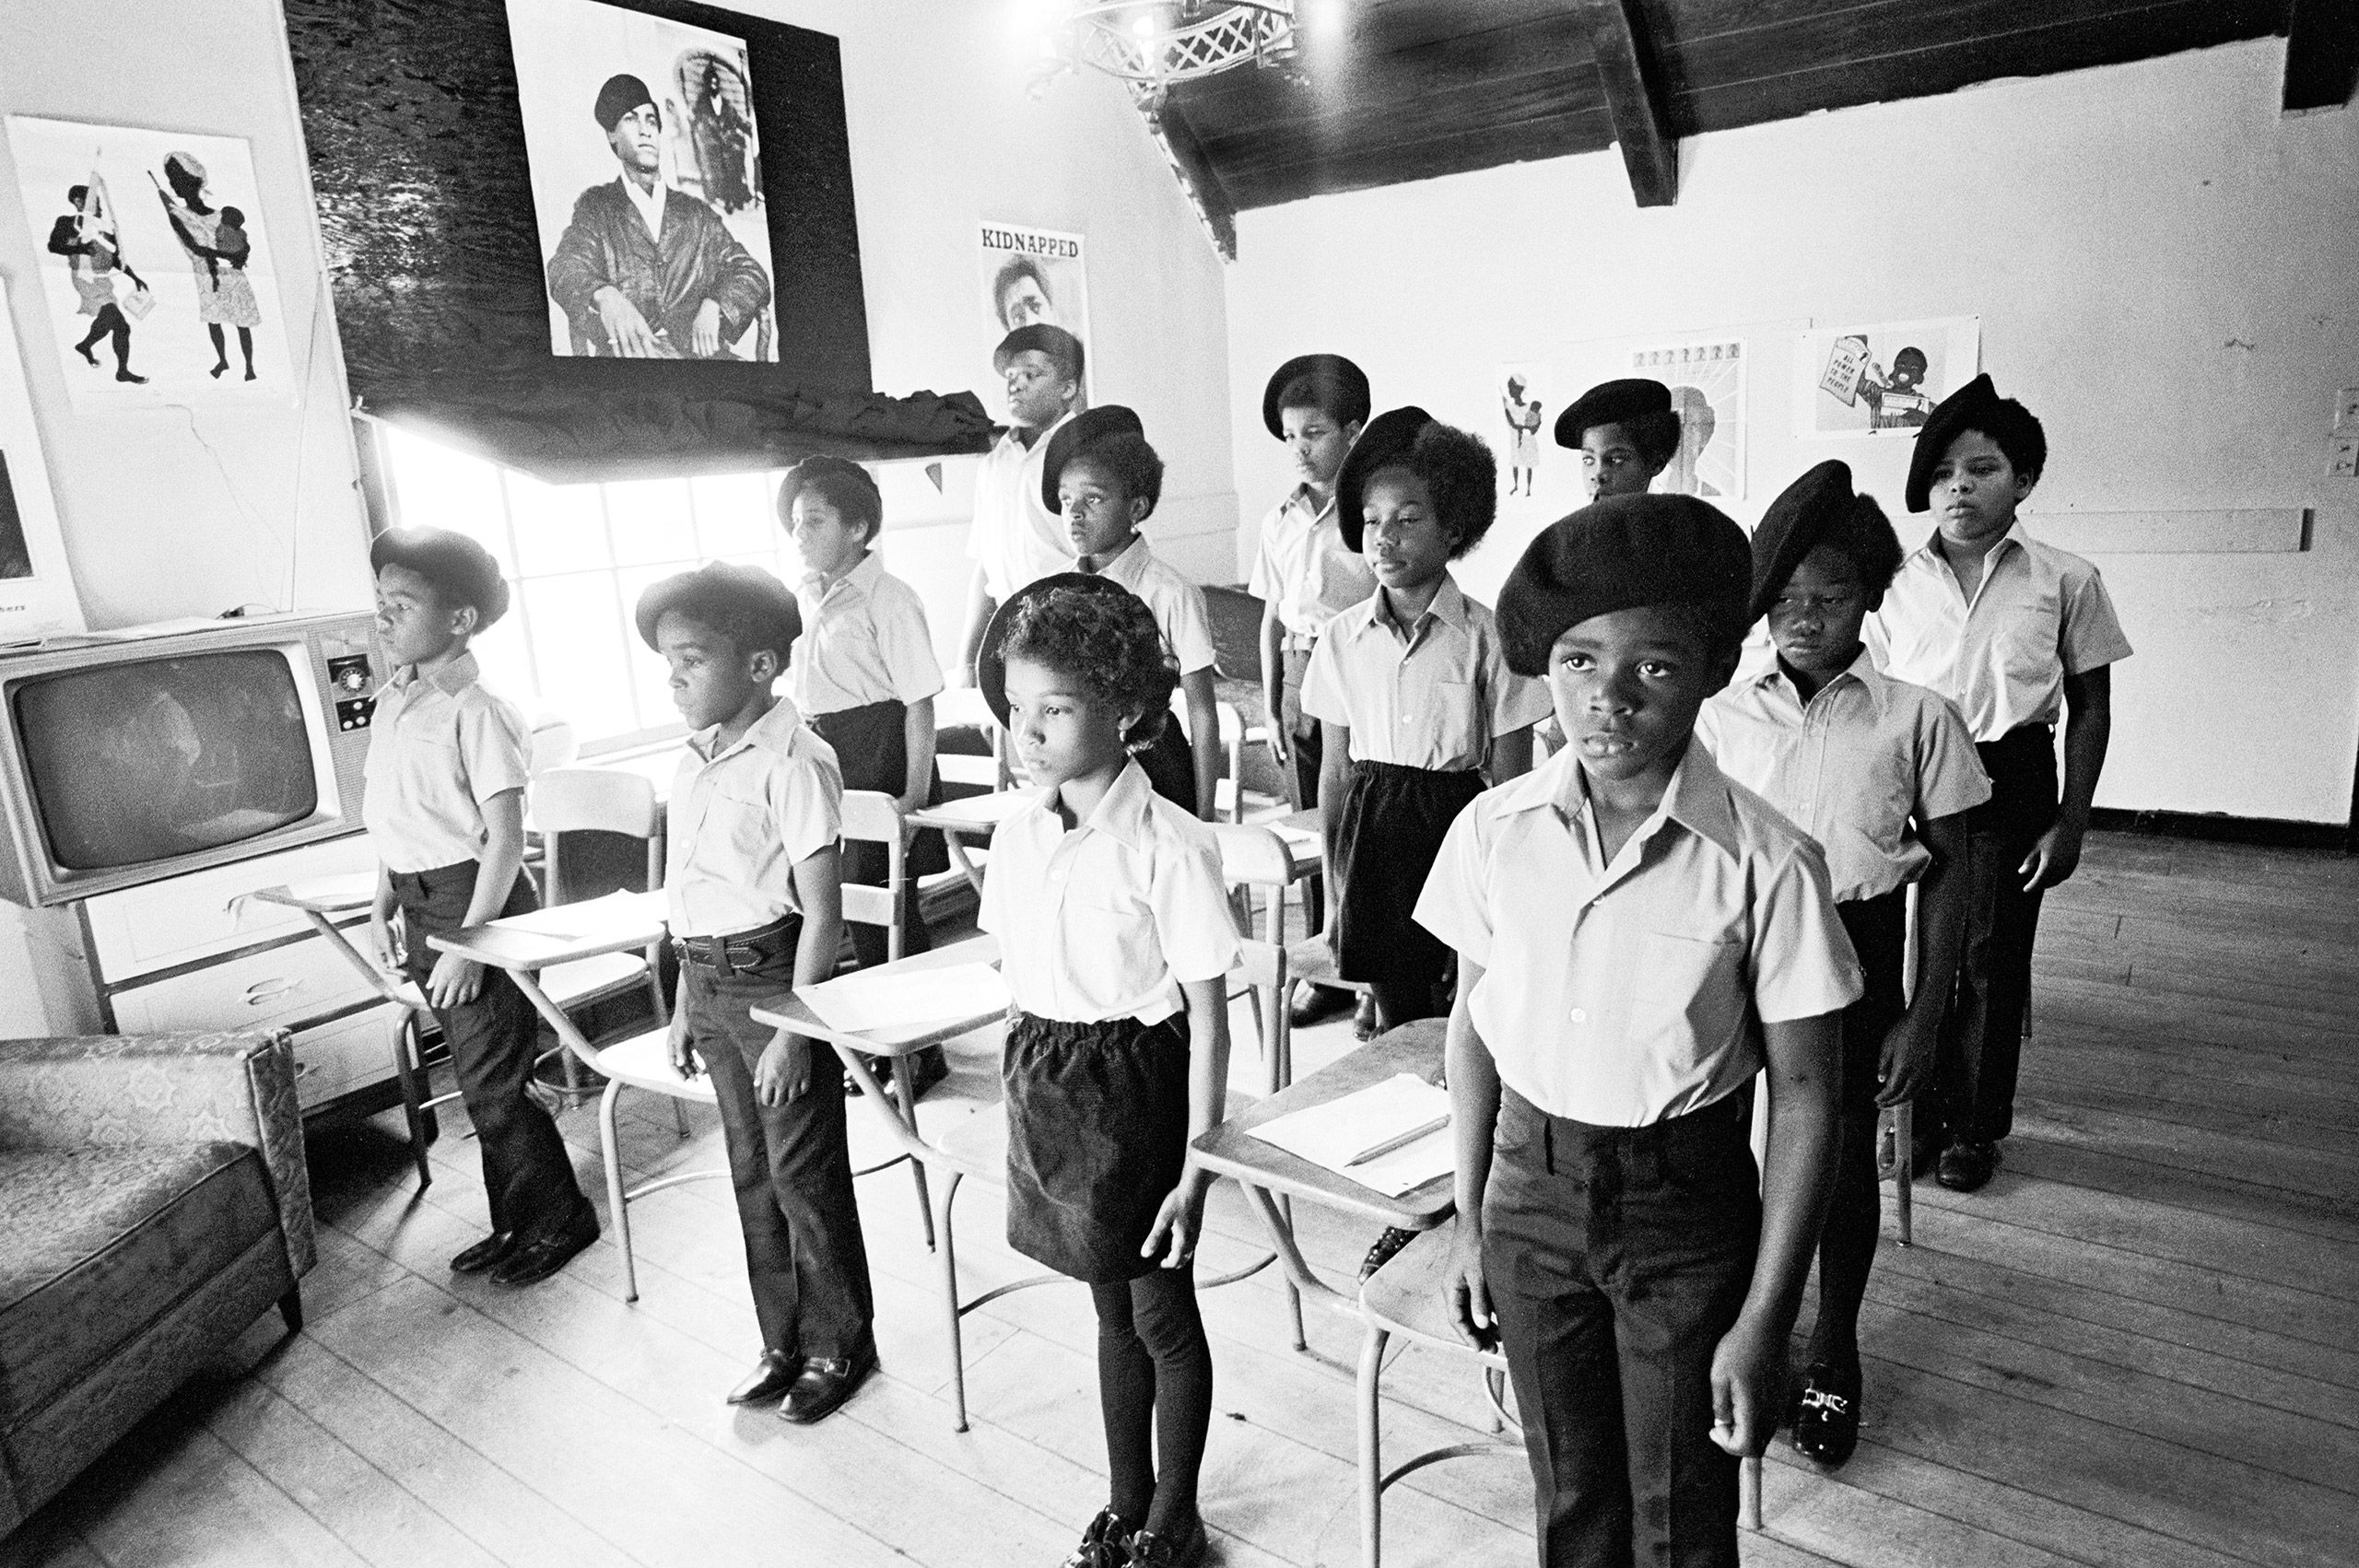 Classroom at the Intercommunal Youth Institute, Oakland, 1971.